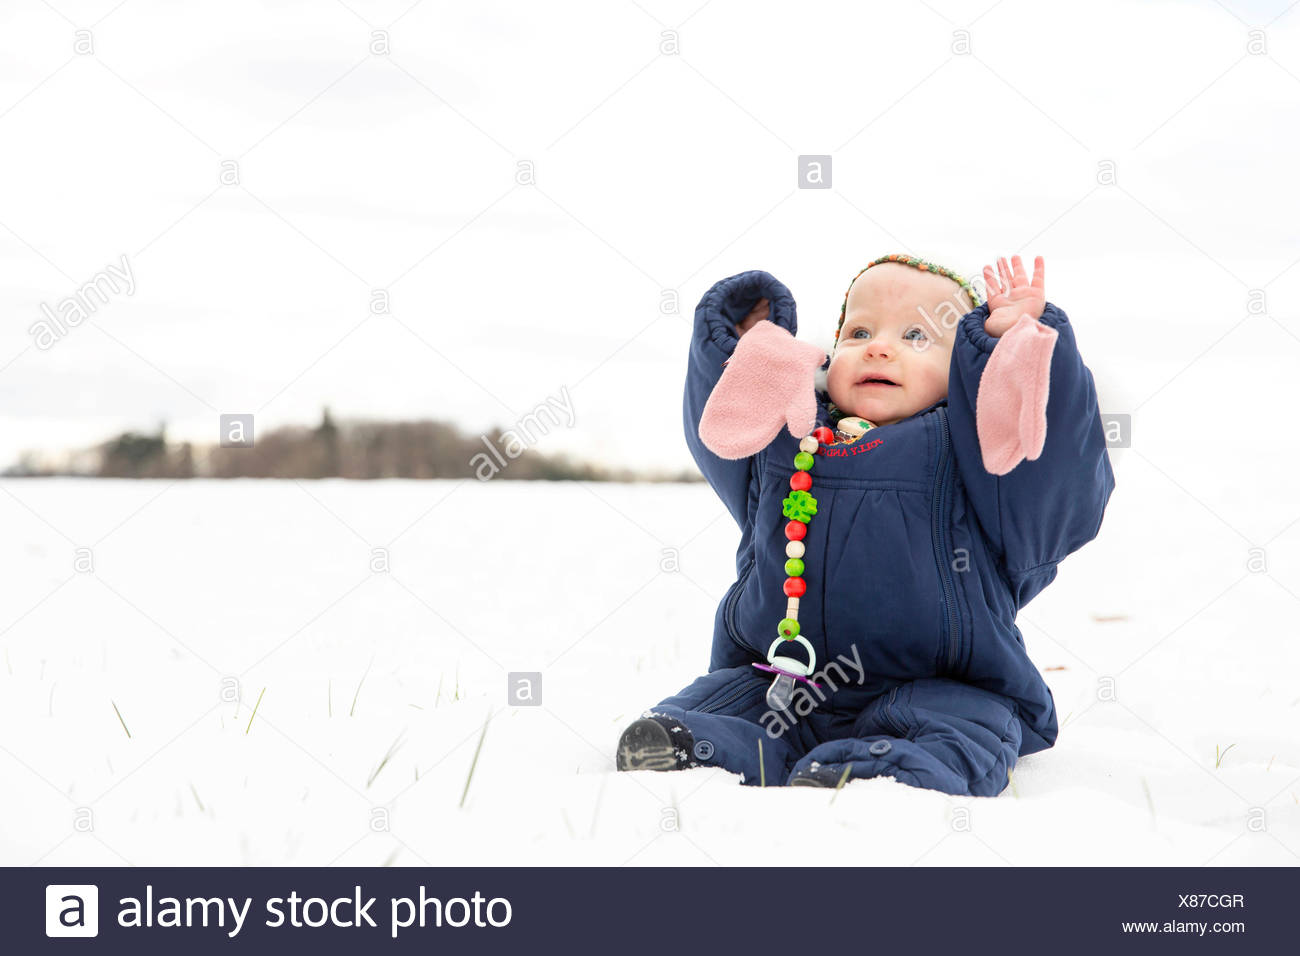 Baby, 9 months, sitting with a snowsuit in the snow - Stock Image